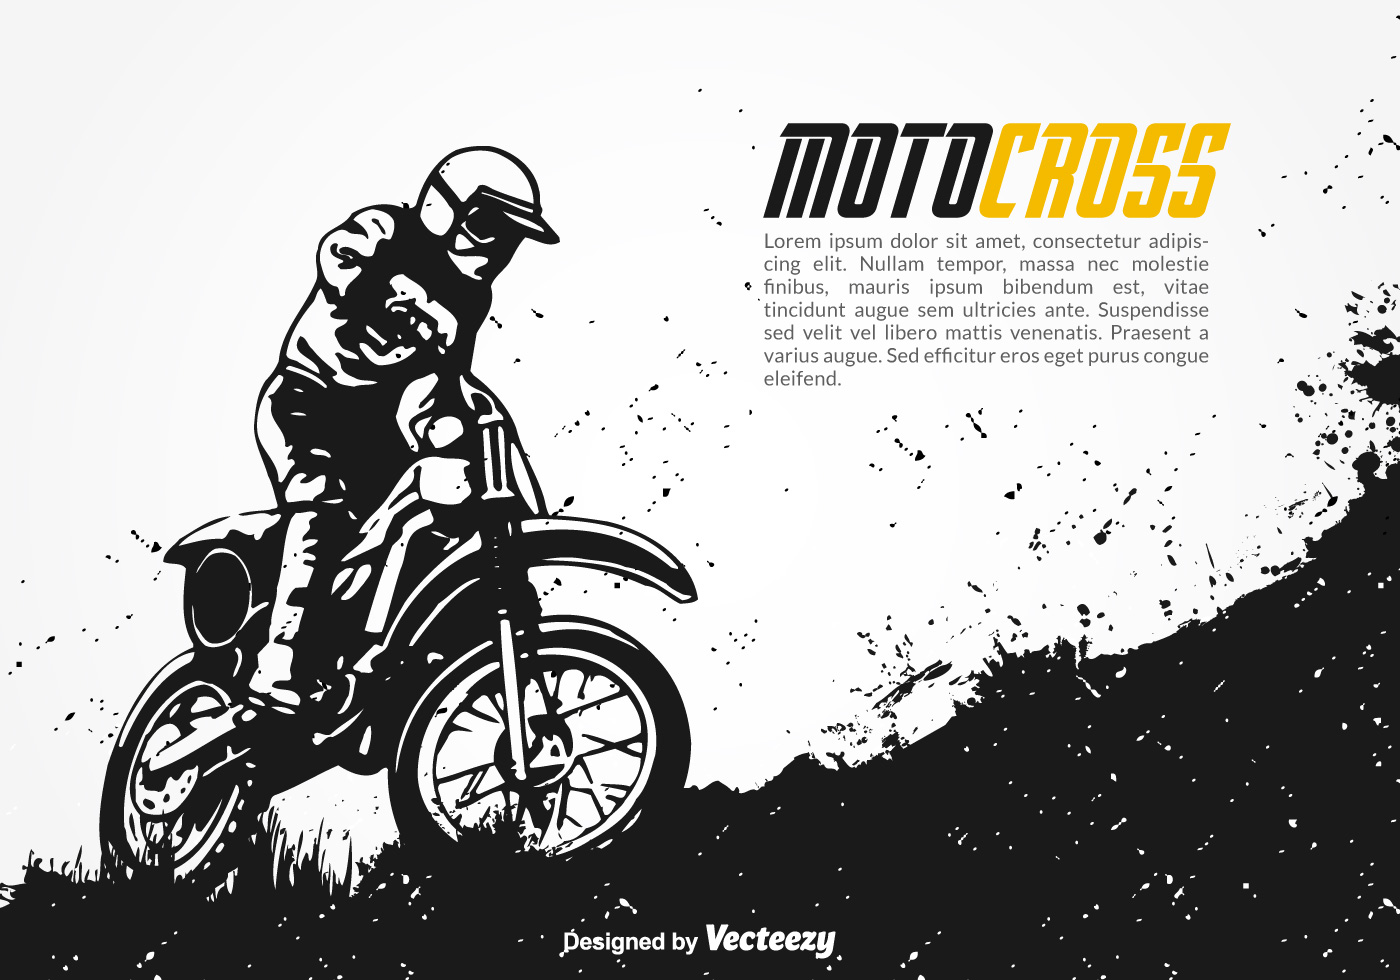 Free Motocross Vector Background - Download Free Vector ...